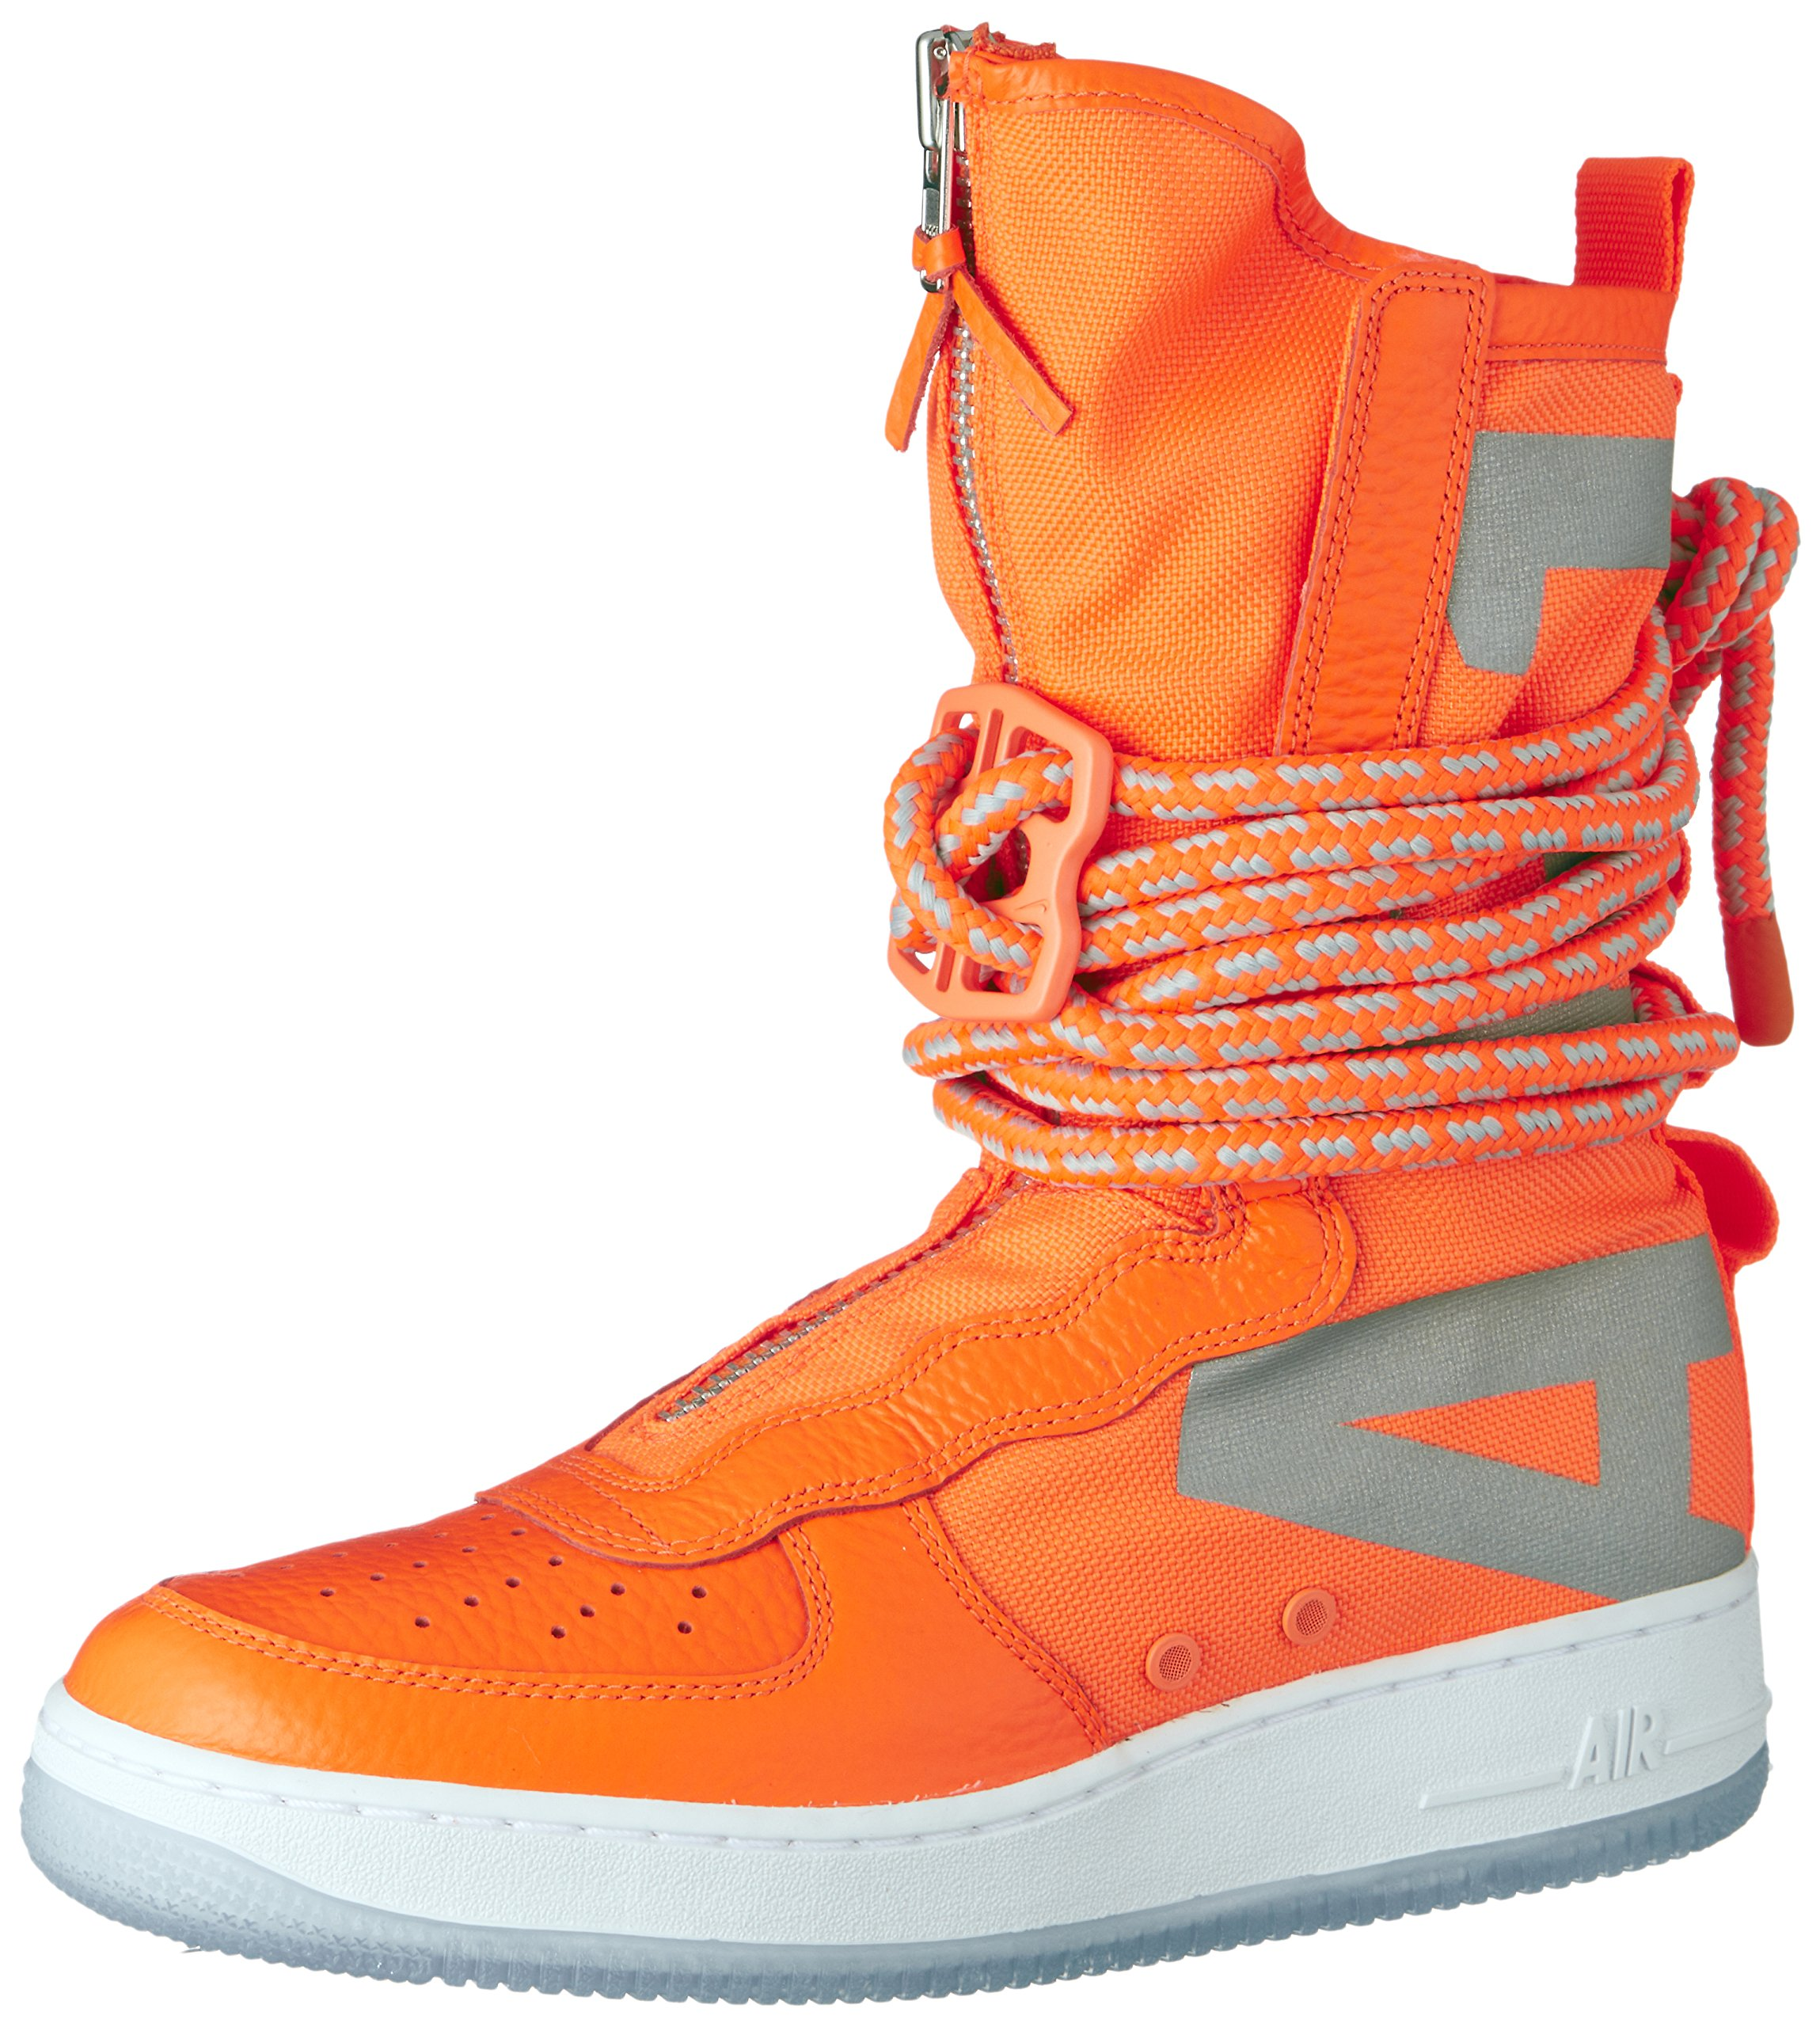 new arrival adc48 f9fb5 Galleon - Nike SF Air Force 1 High Top Mens Boots Total Orange White Aa1128-800  (11.5 D(M) US)